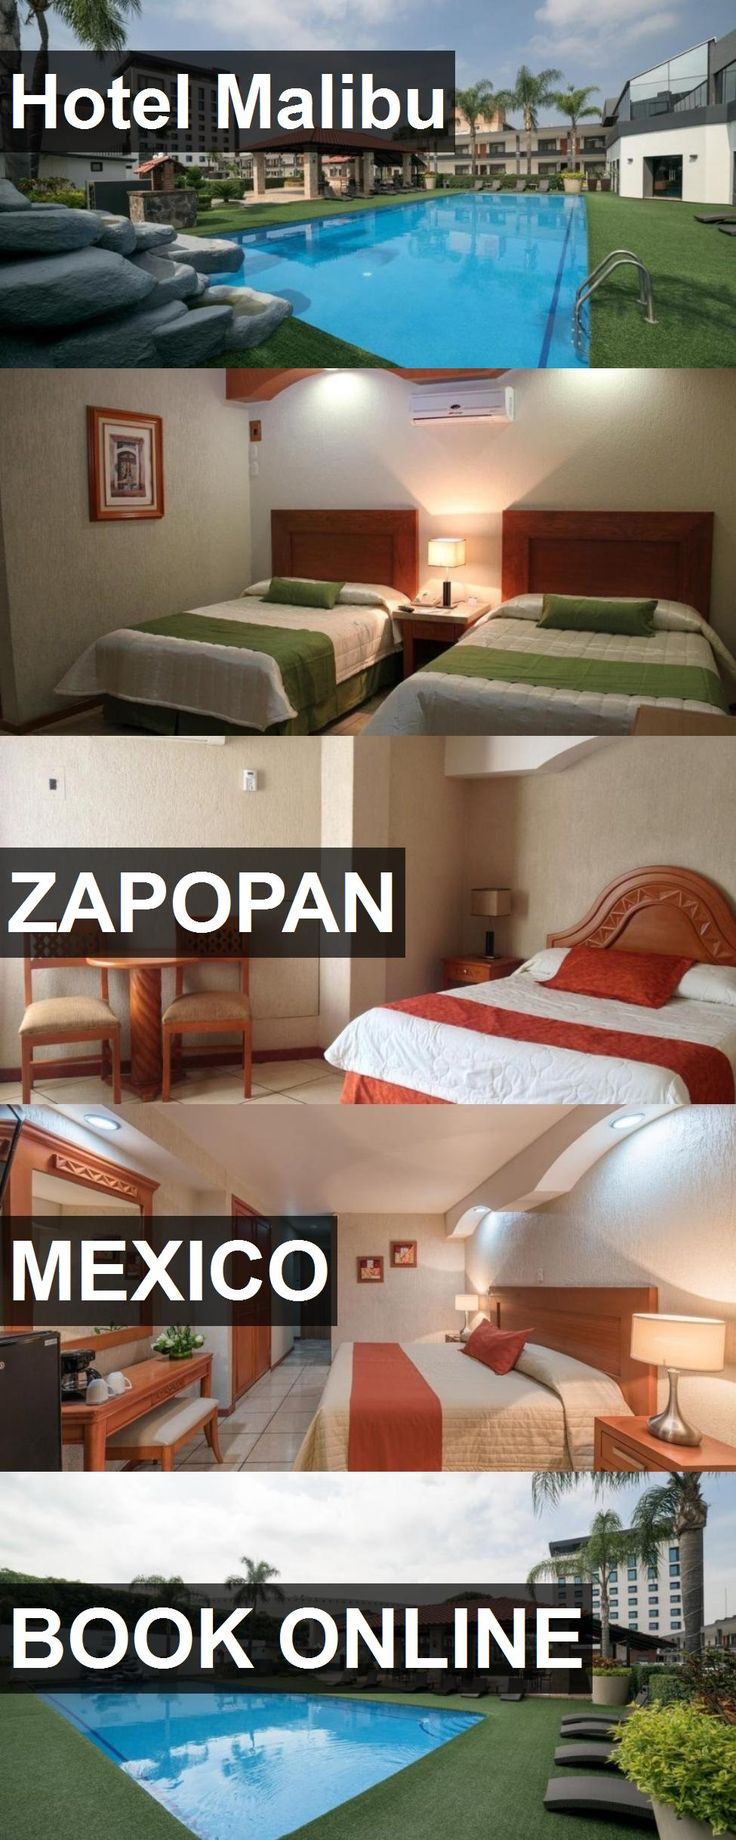 Hotel Hotel Malibu in Zapopan, Mexico. For more information, photos, reviews and best prices please follow the link. #Mexico #Zapopan #hotel #travel #vacation